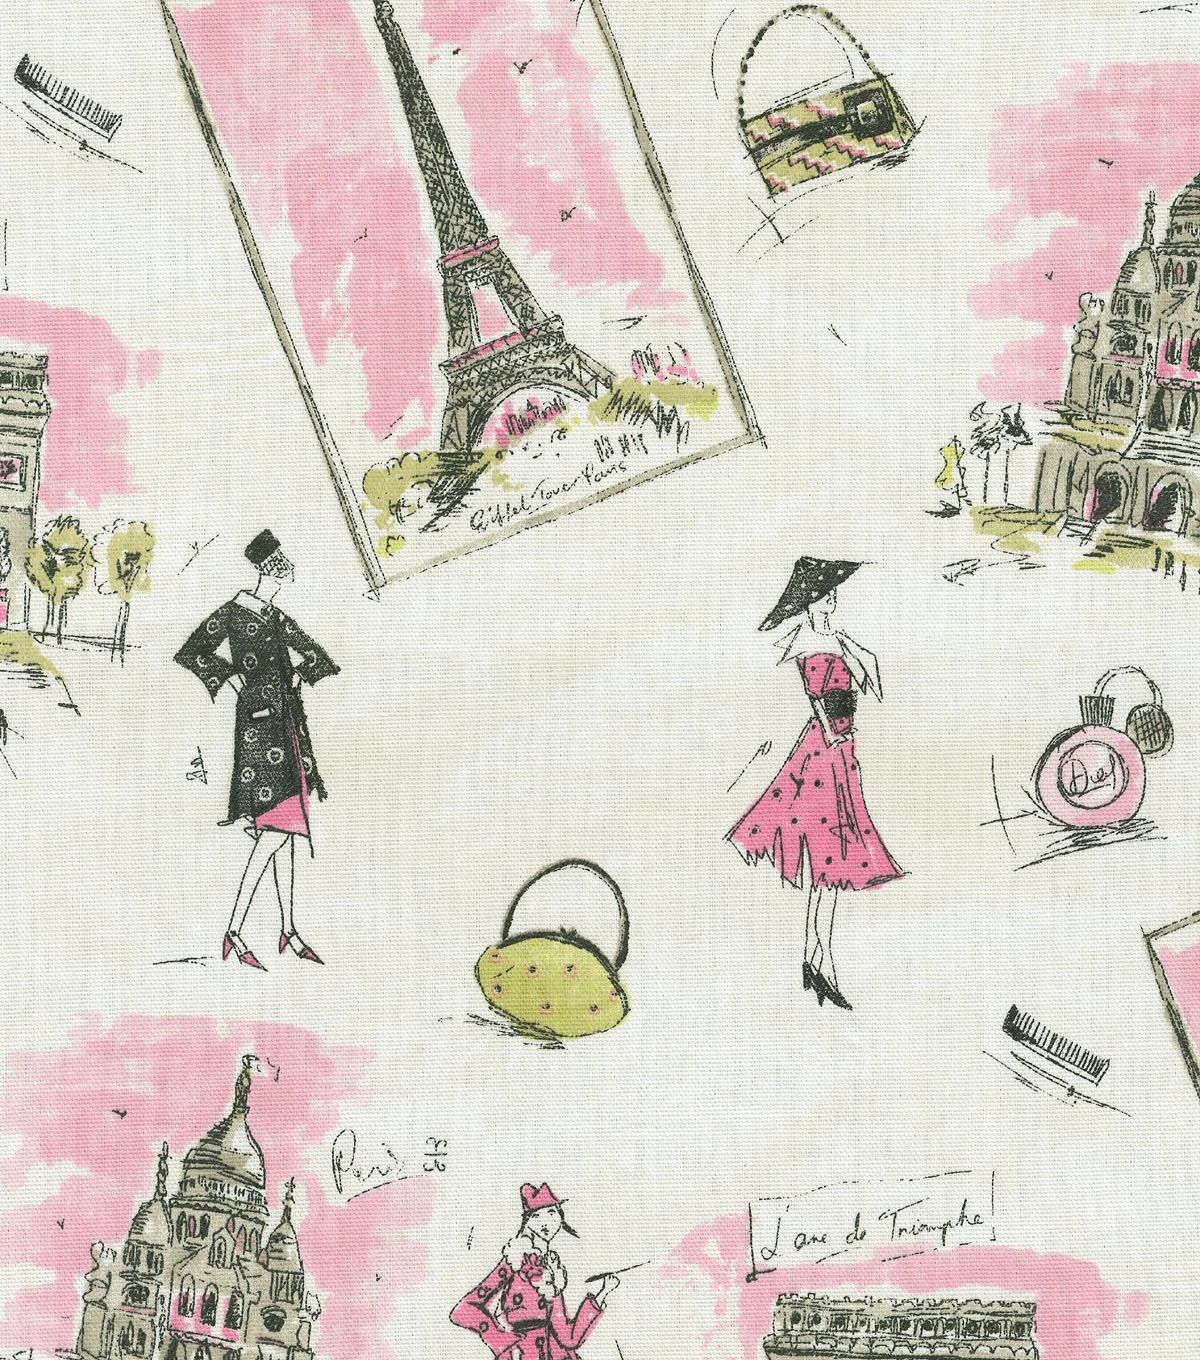 Genial Waverly Upholstery Fabric   Tres Chic Black Pink   Home Decor Fabric   Decor  Fabric   Upholstery Fab